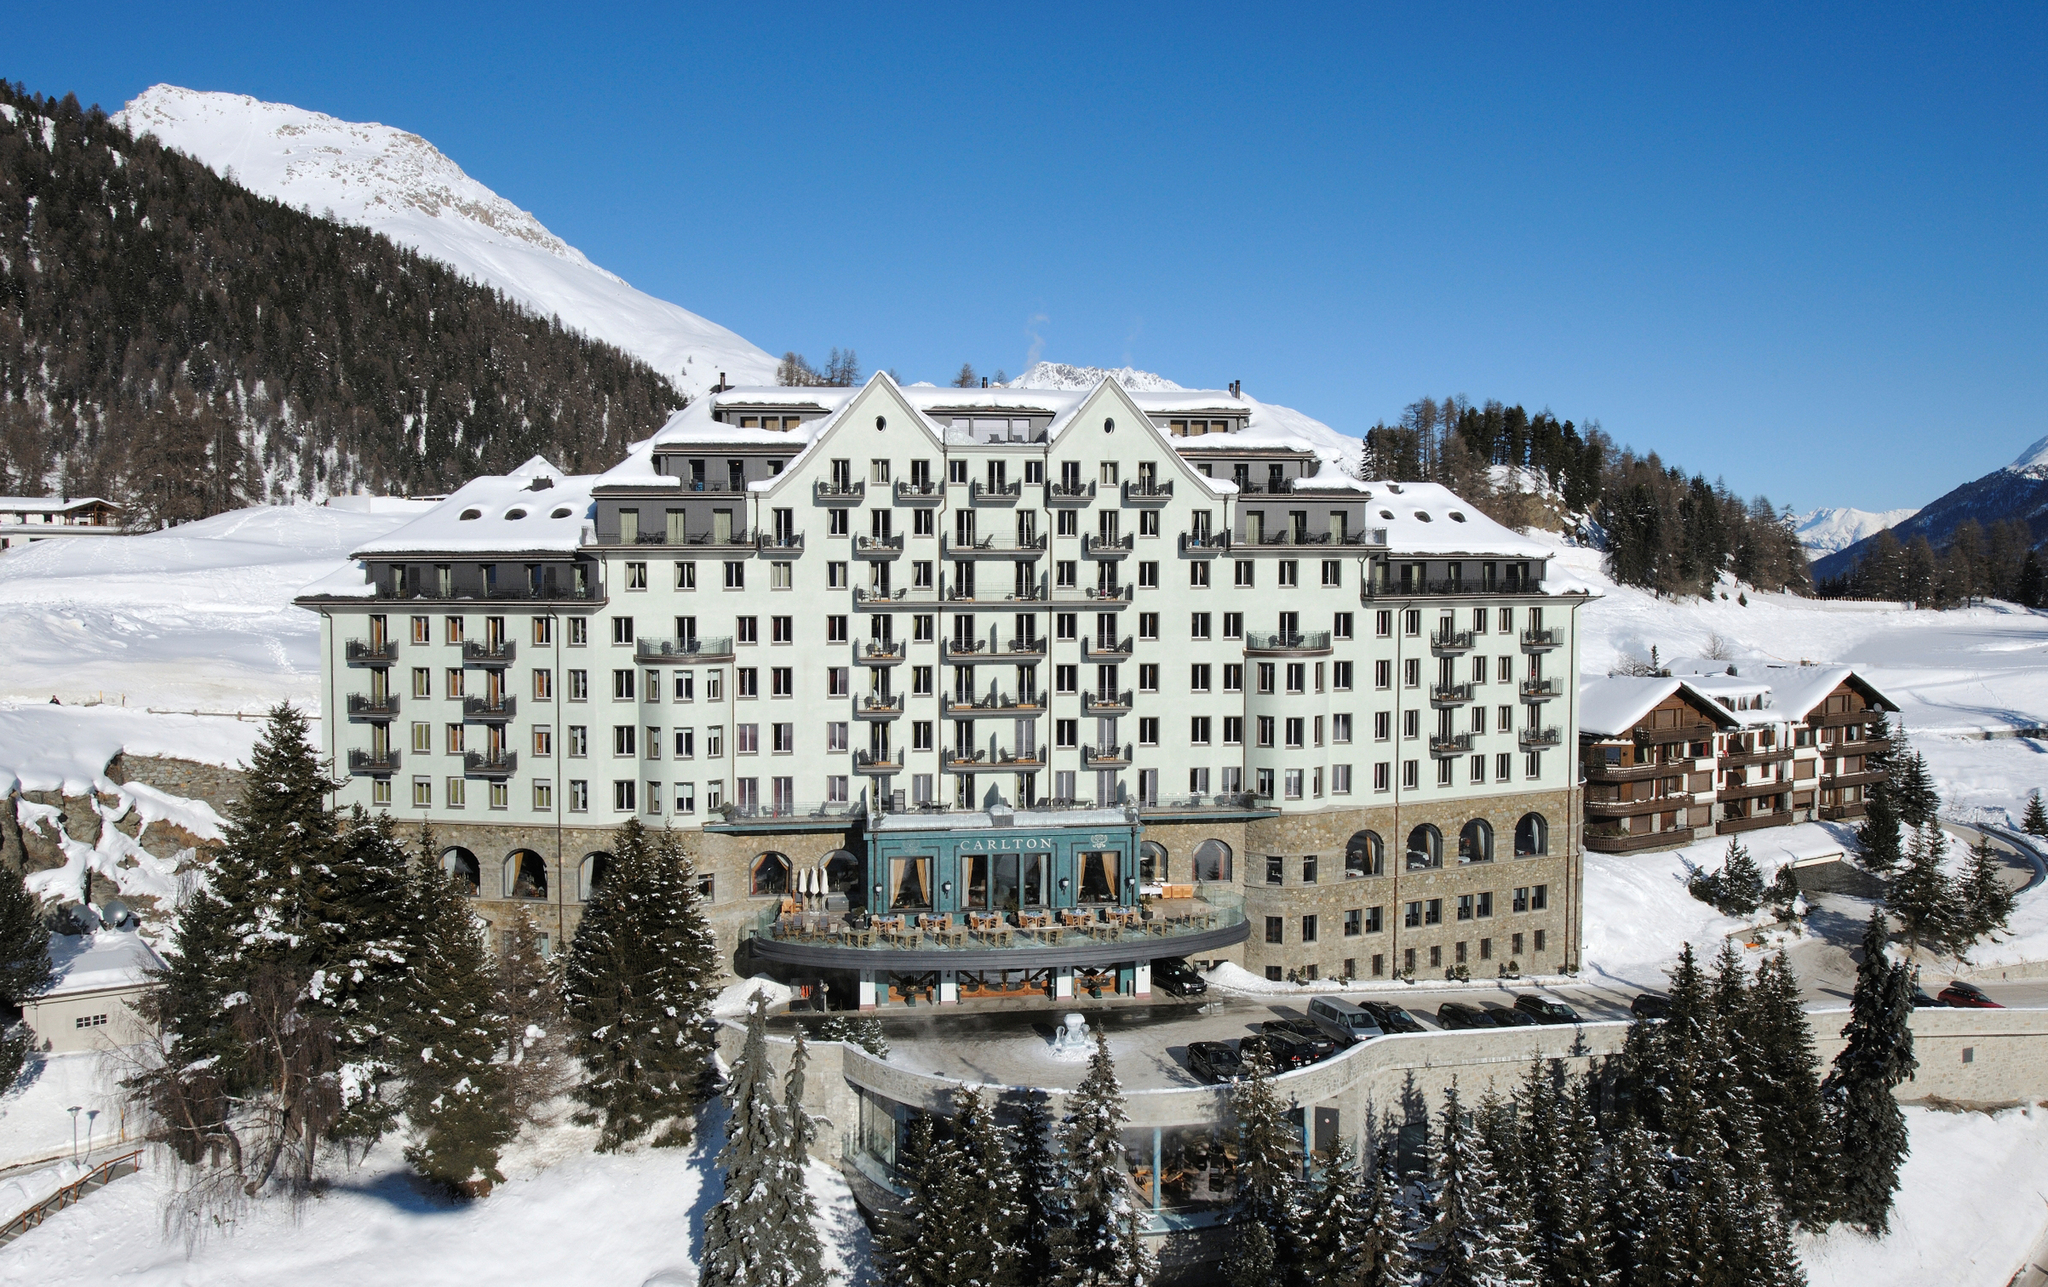 The Carlton Hotel in Saint Moritz